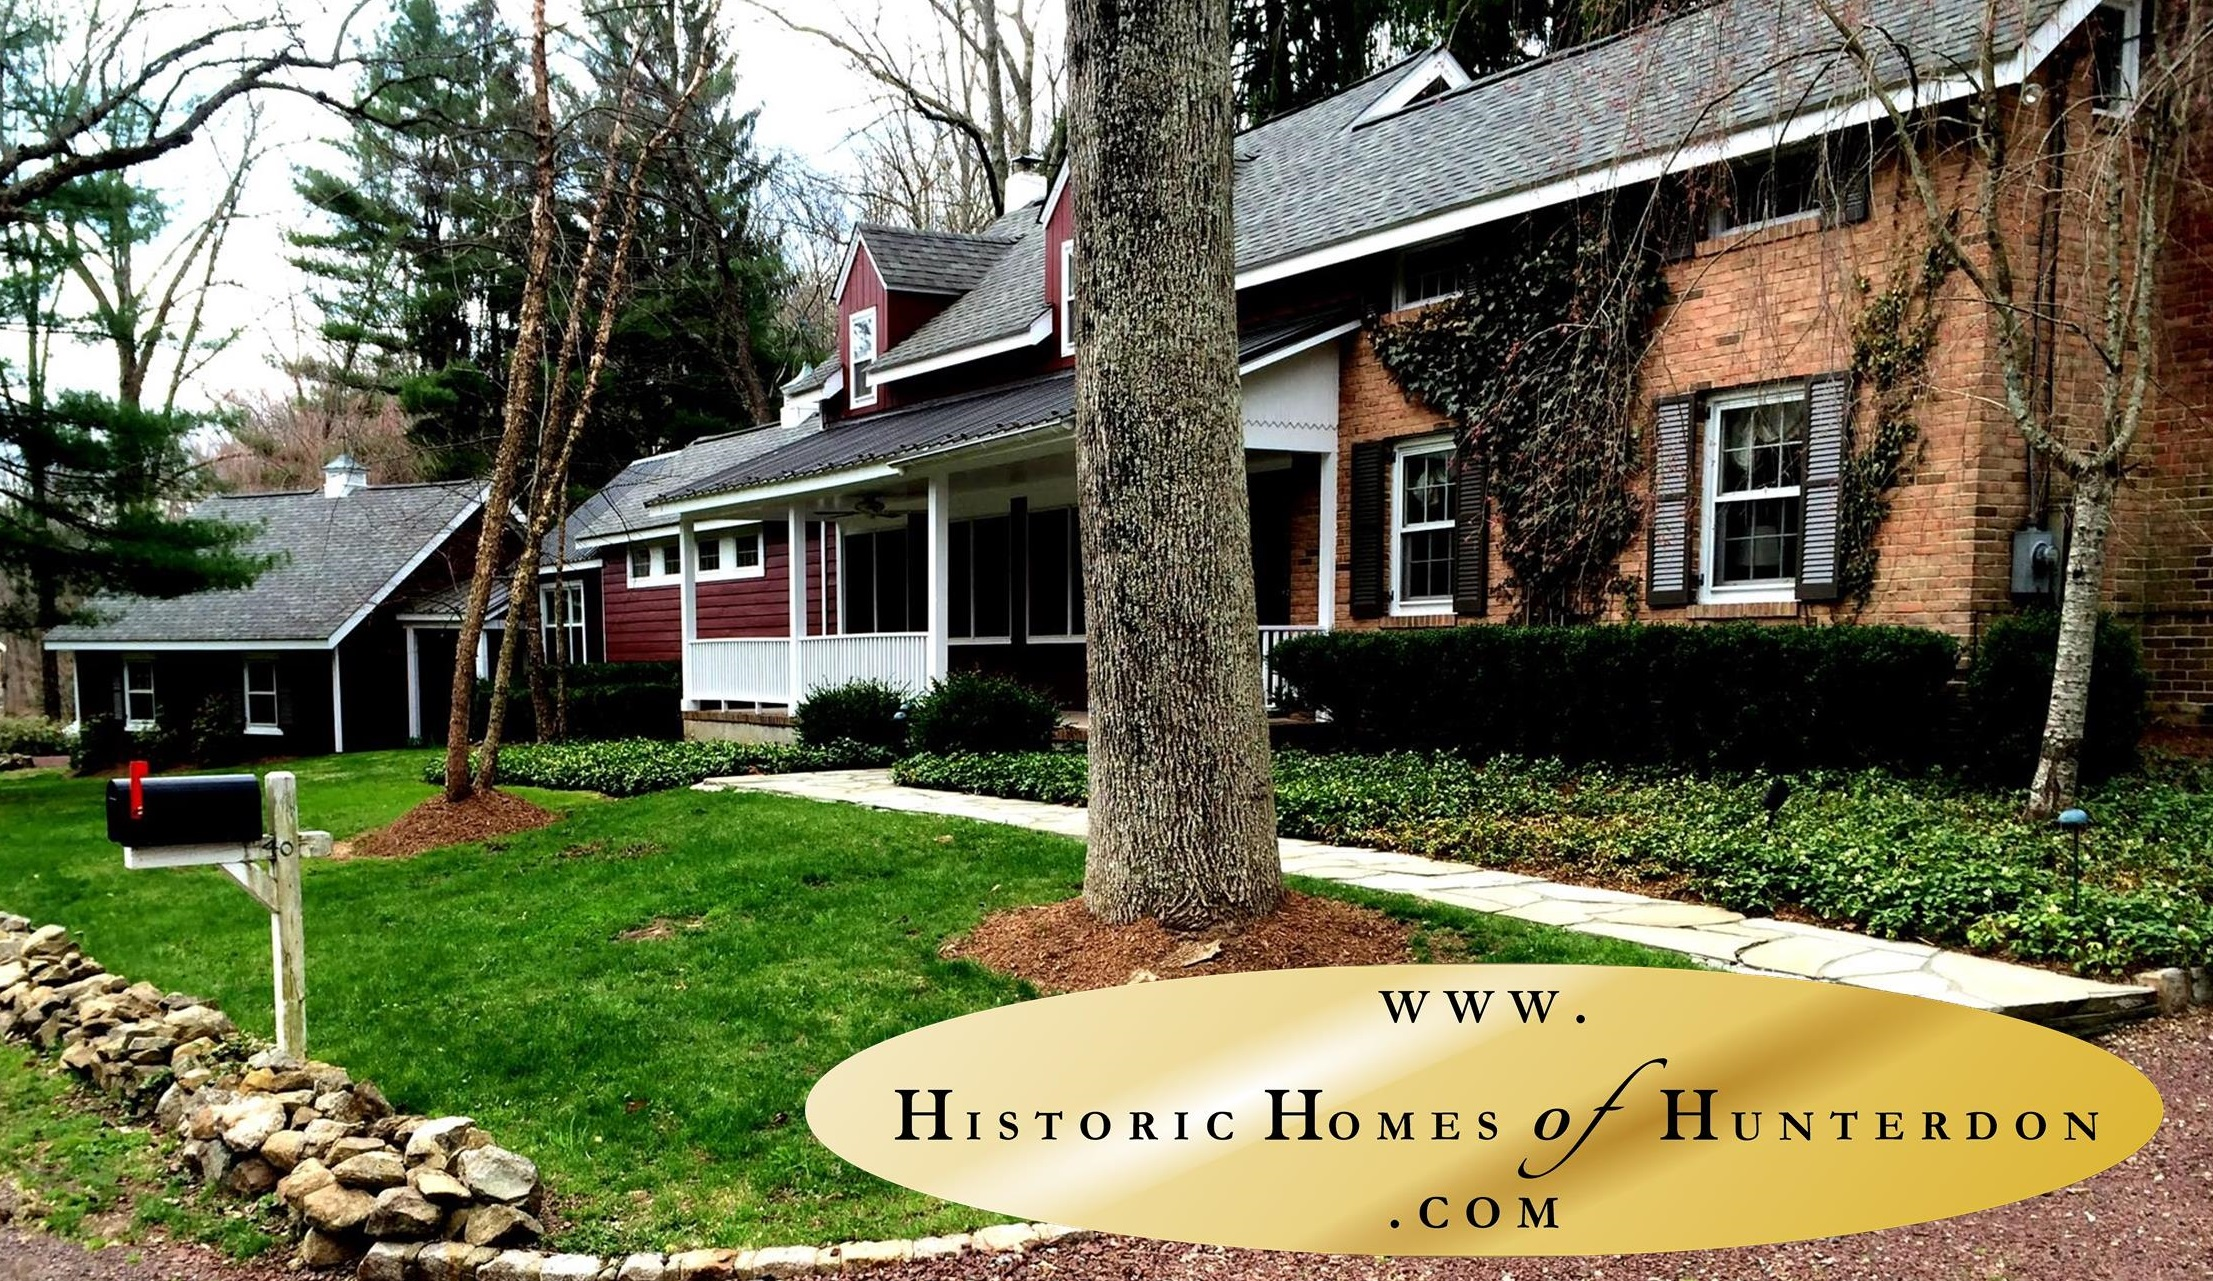 Historic Homes Of Hunterdon | Hunterdon County NJ Historic Home for Sale | Tewksbury Twp Homes for Sale | Charming Country Home for Sale NJ